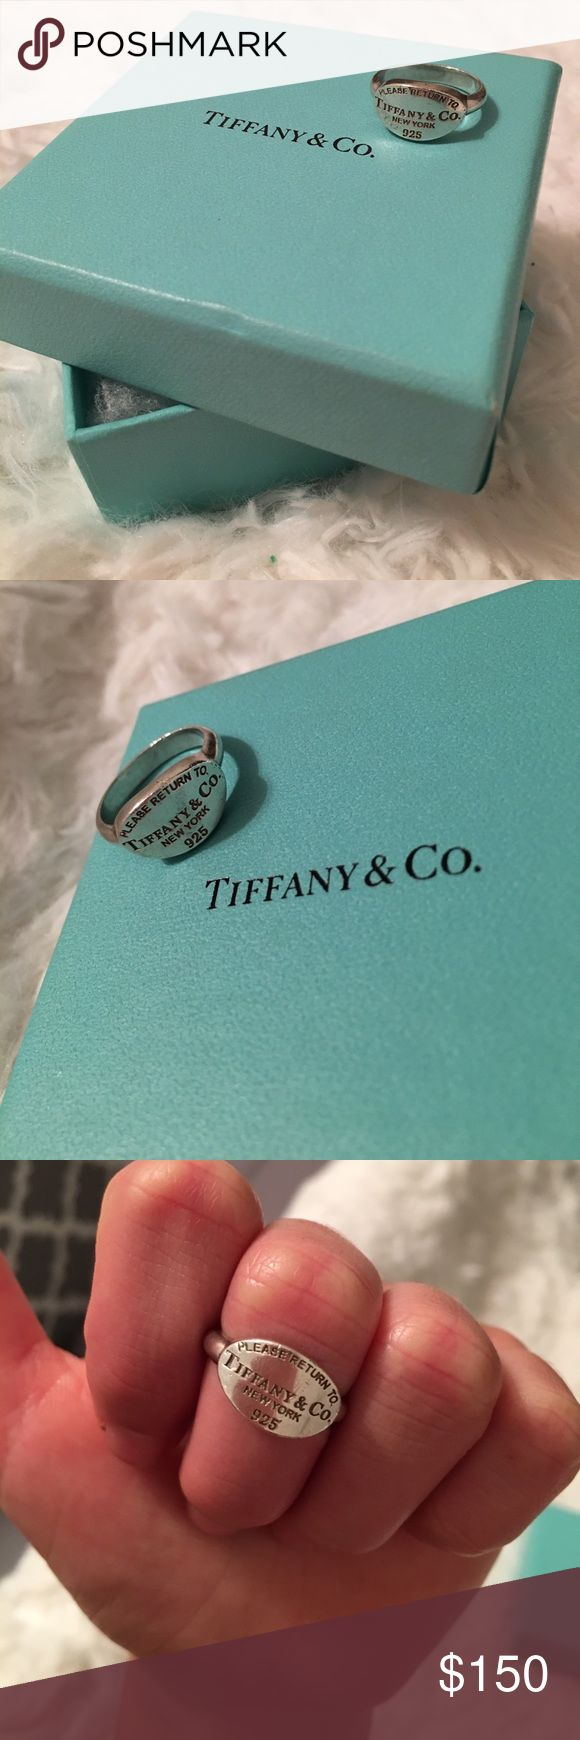 Best 20 Tiffany Rings Ideas On Pinterest Beautiful